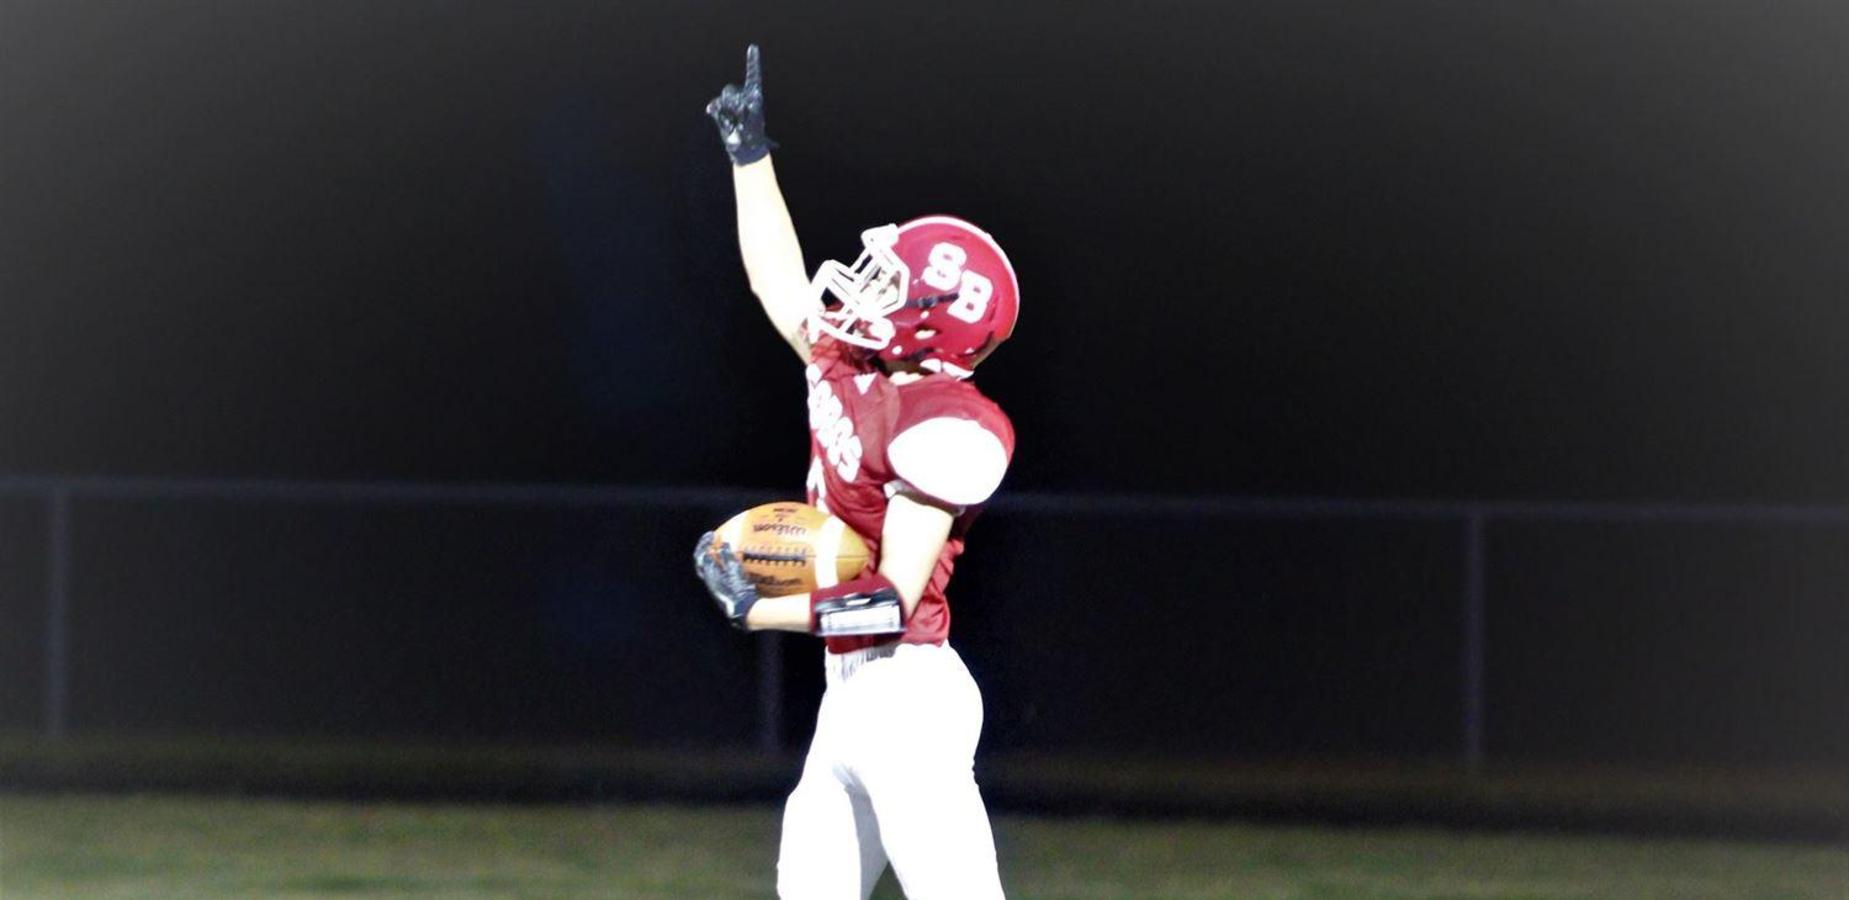 Football player pointing up